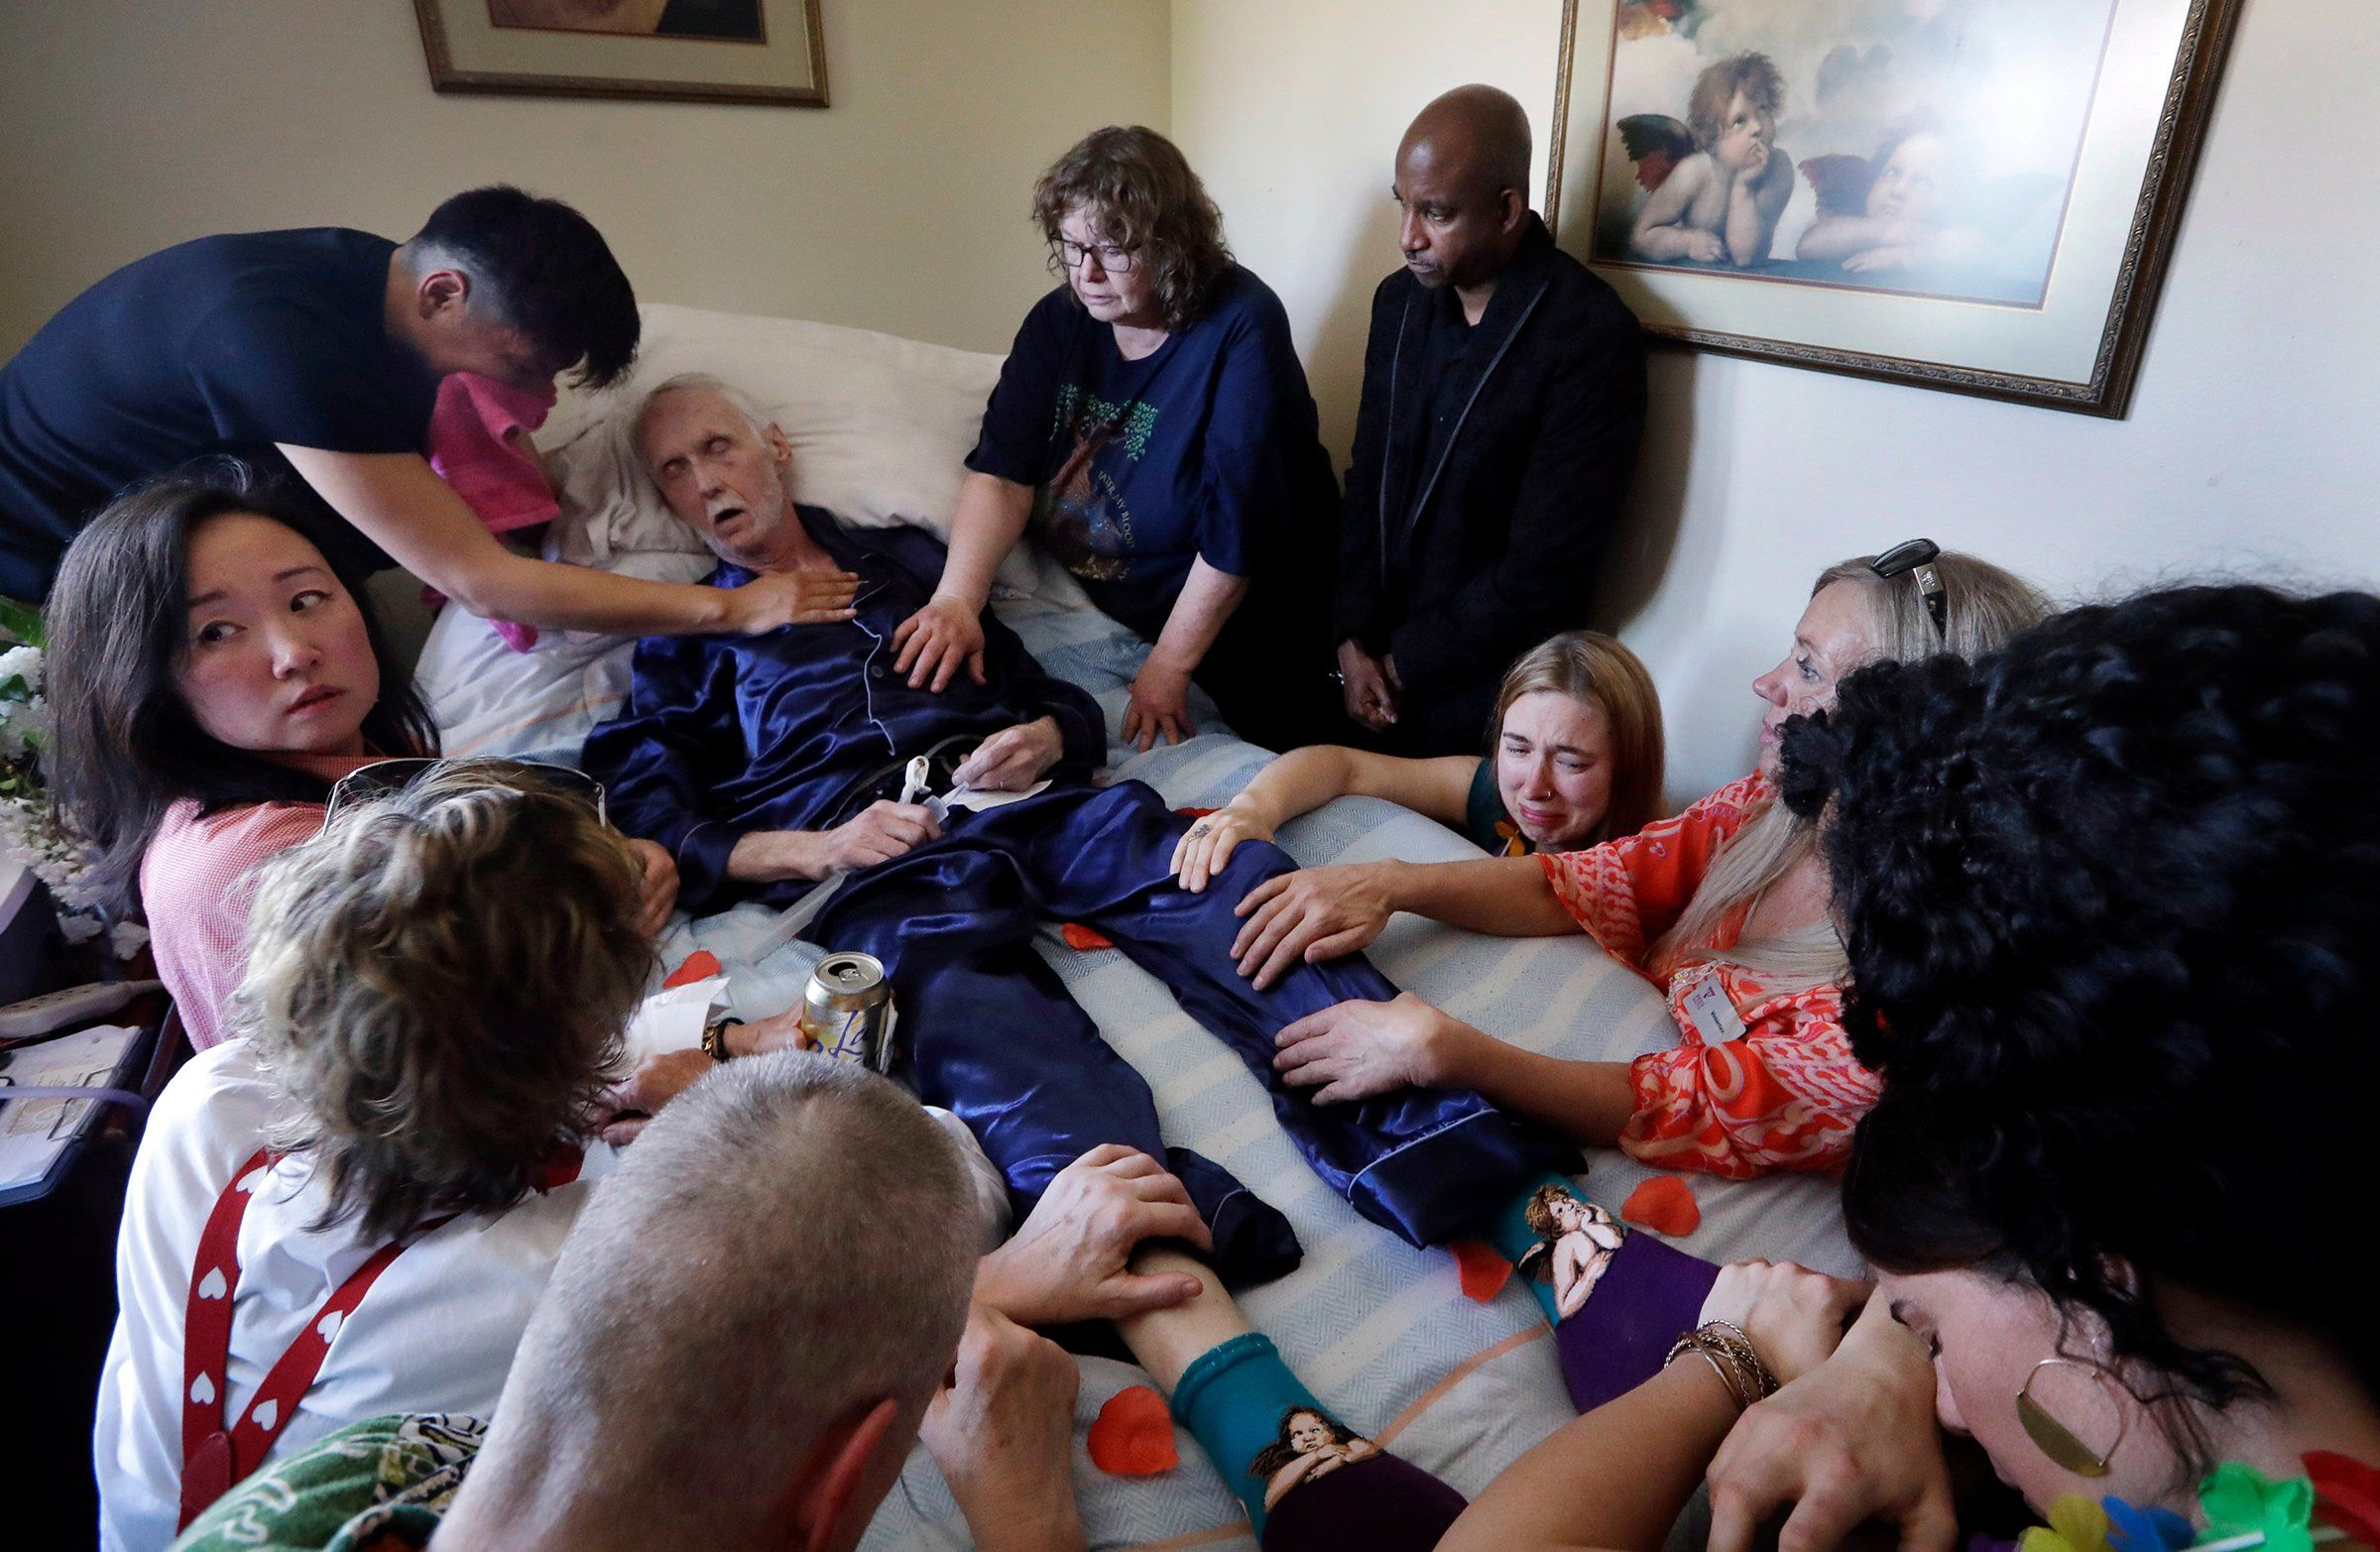 Robert Fuller lies unconscious after plunging prescribed drugs—to end his life—into his feeding tube in Seattle on May 10. Fuller's partner, Reese Baxter, top left, and friends lay their hands on him. The 75-year-old is one of about 1,200 people who have used Washington's Death with Dignity Act to end their lives in the decade since it became law.